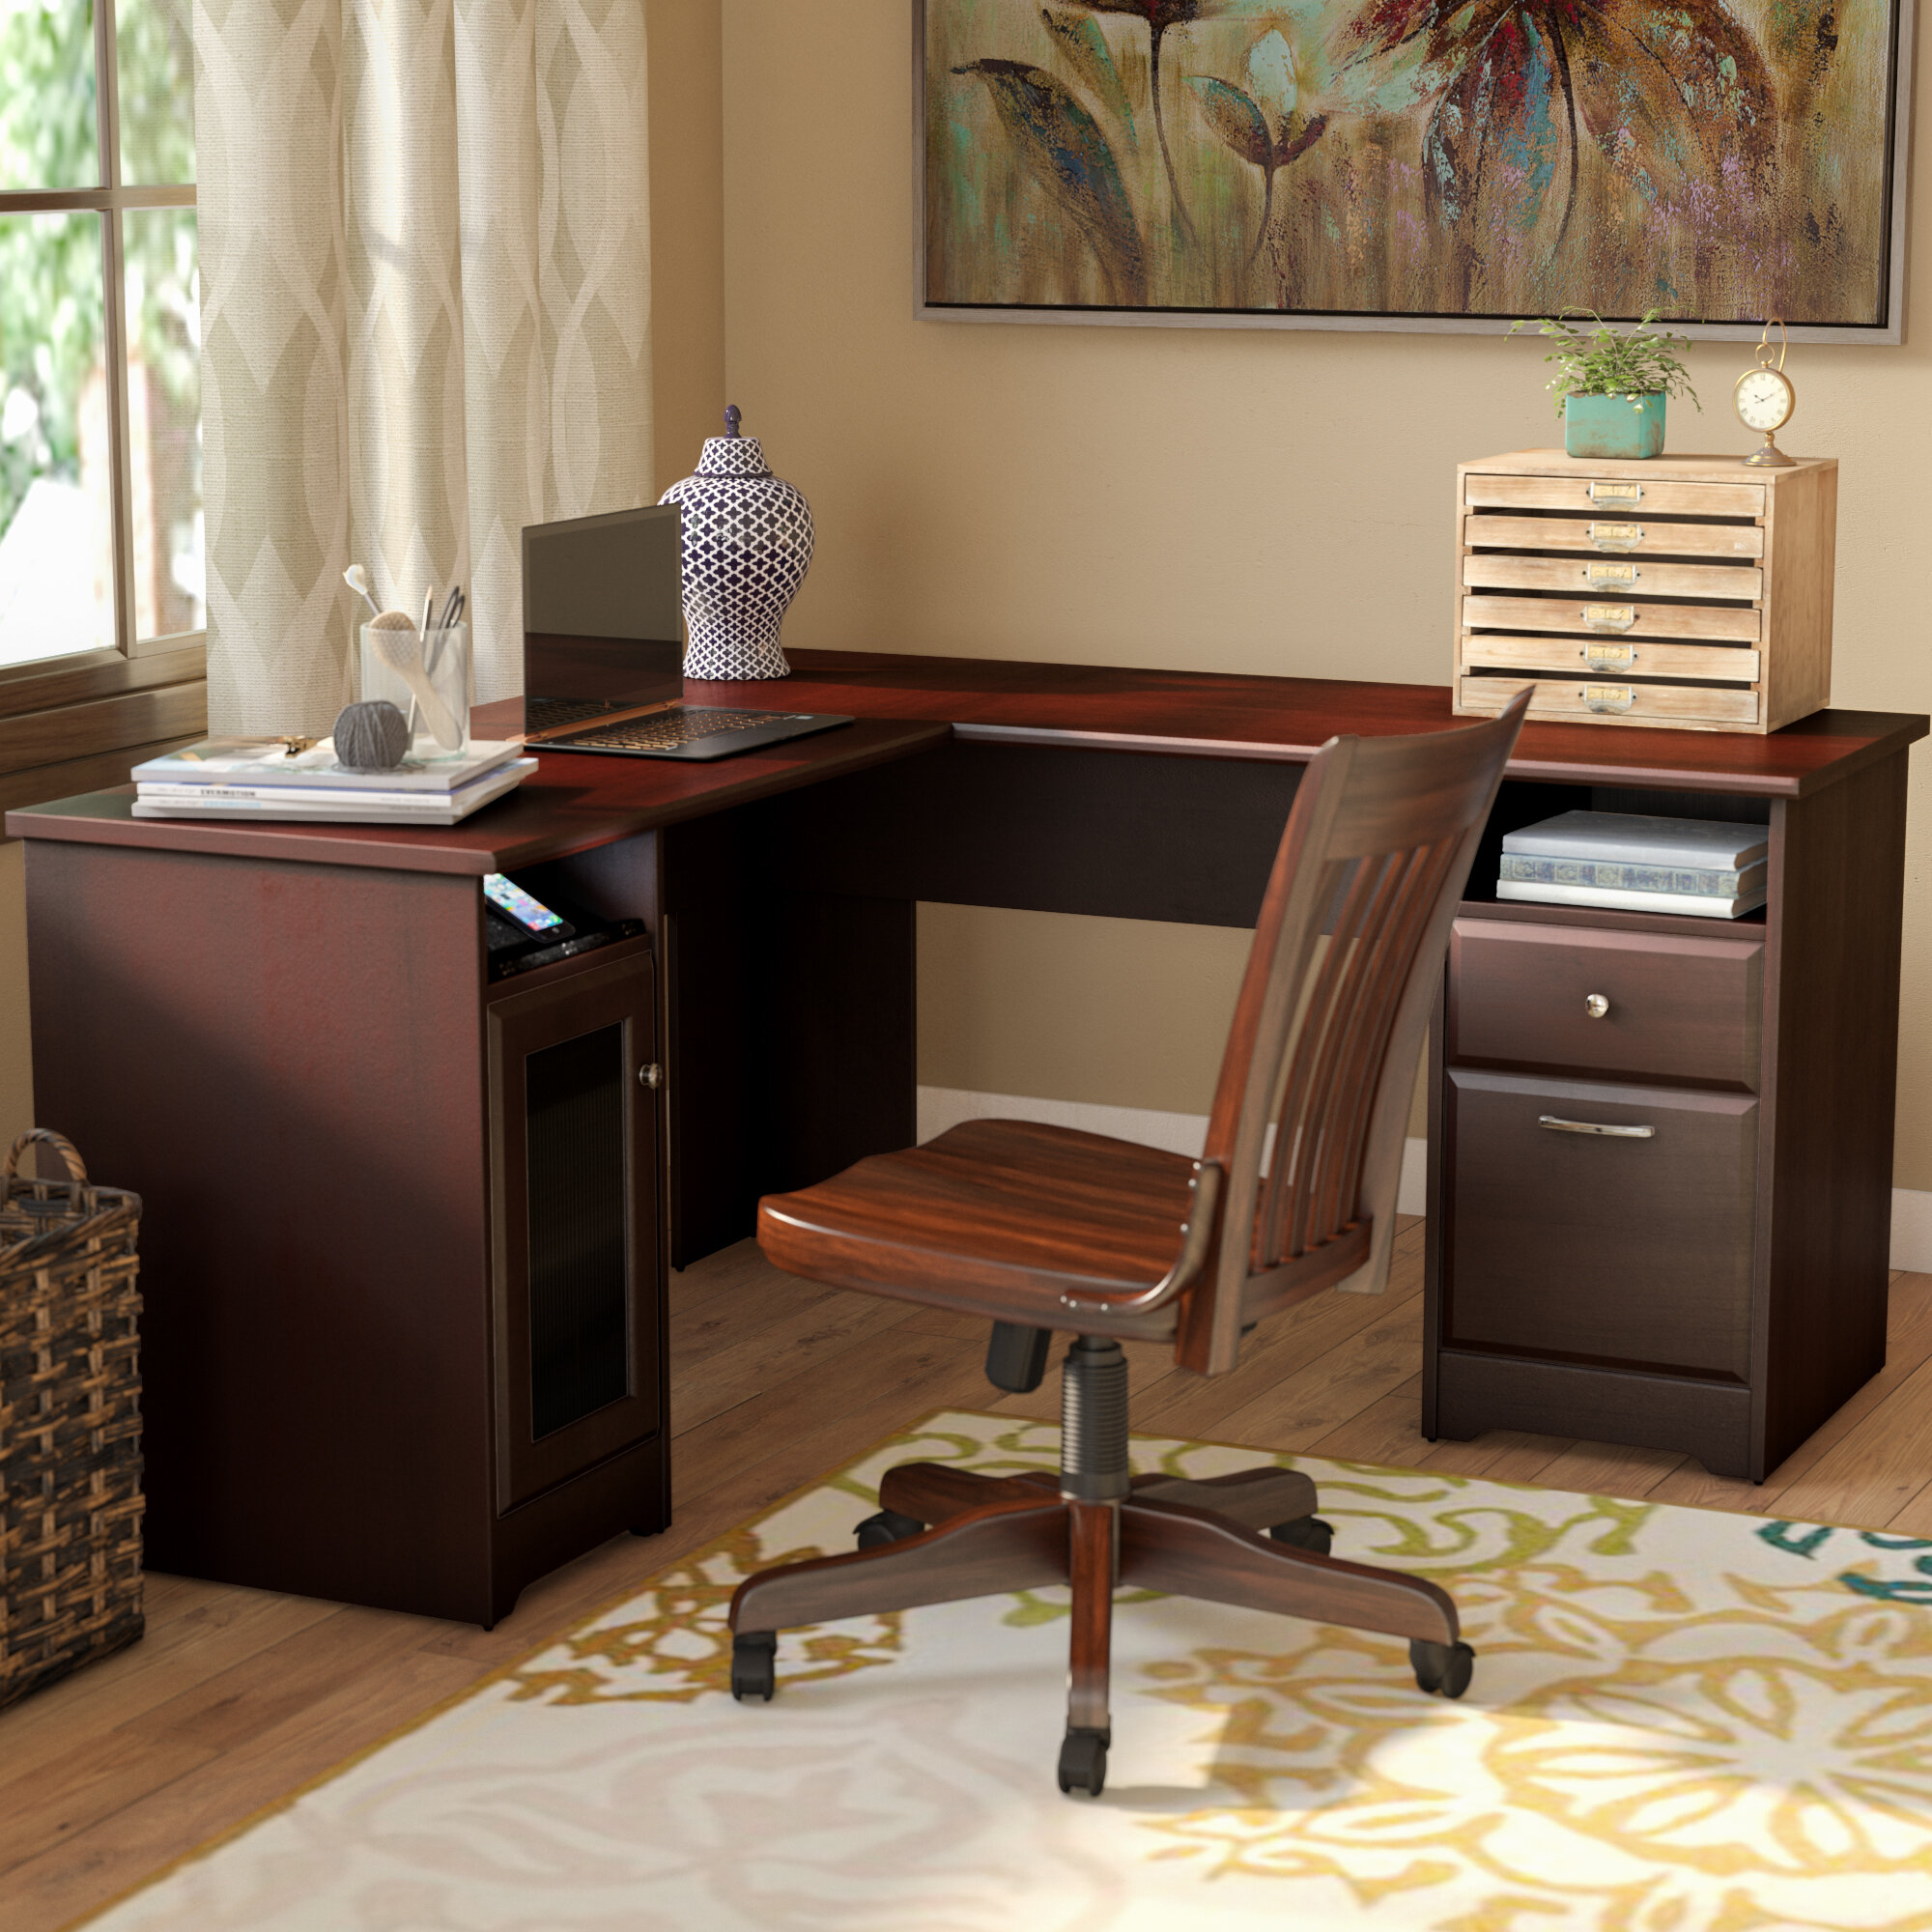 Brilliant Solid Oak Roll Top Desk Wayfair Interior Design Ideas Clesiryabchikinfo